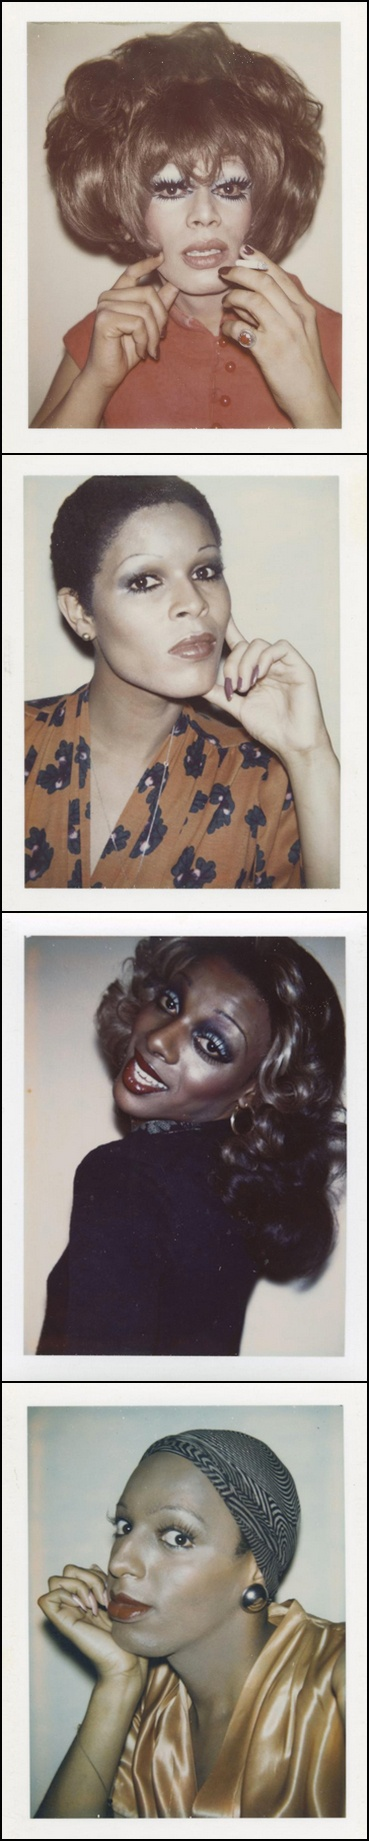 Drag Queen Polaroids by Andy Warhol, 1974